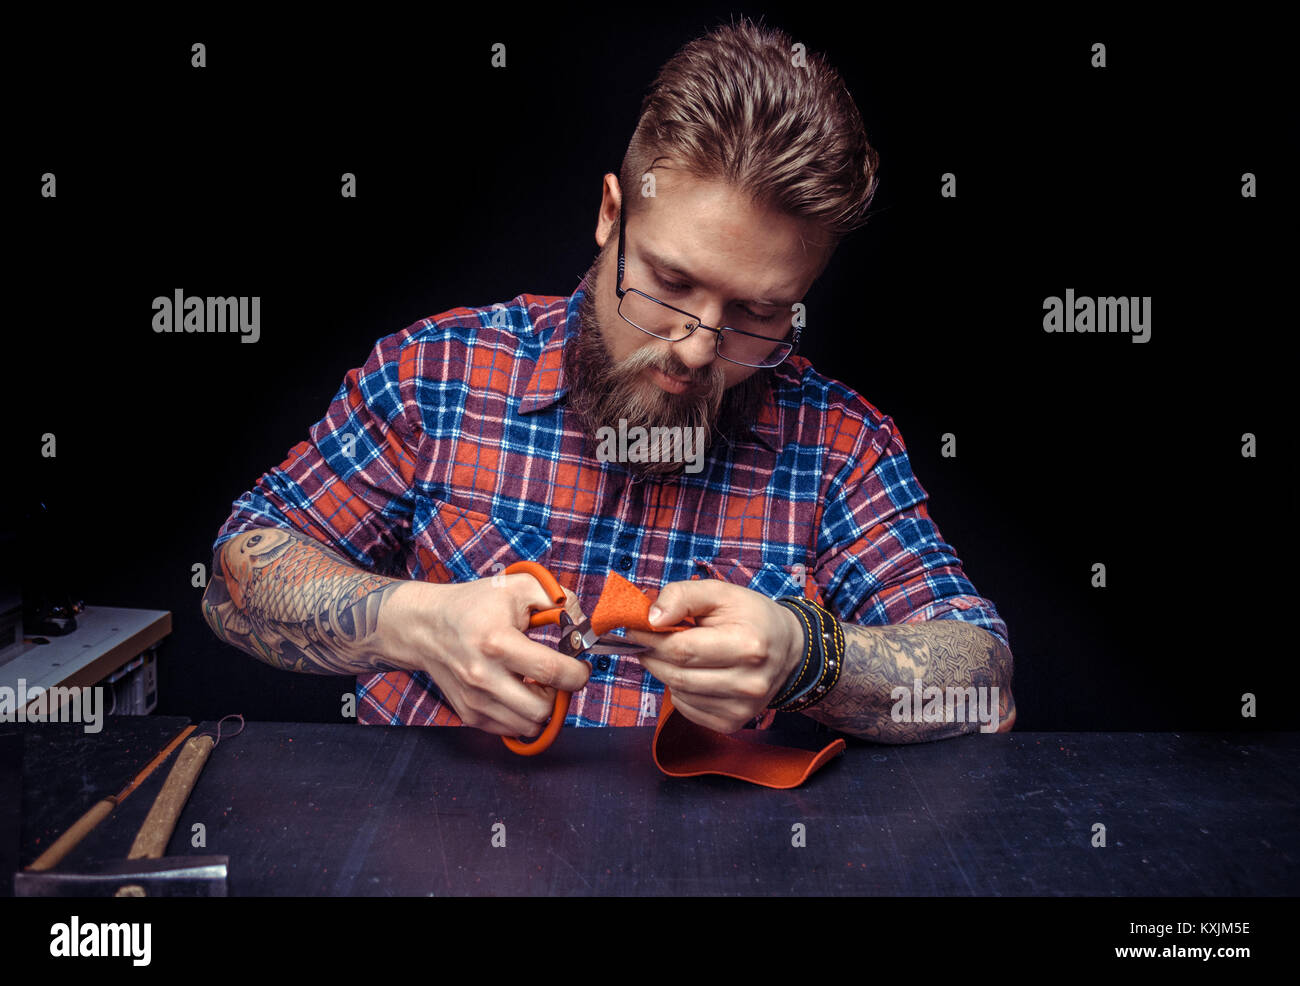 Craftsman working with leather works with leather goods at his desk - Stock Image